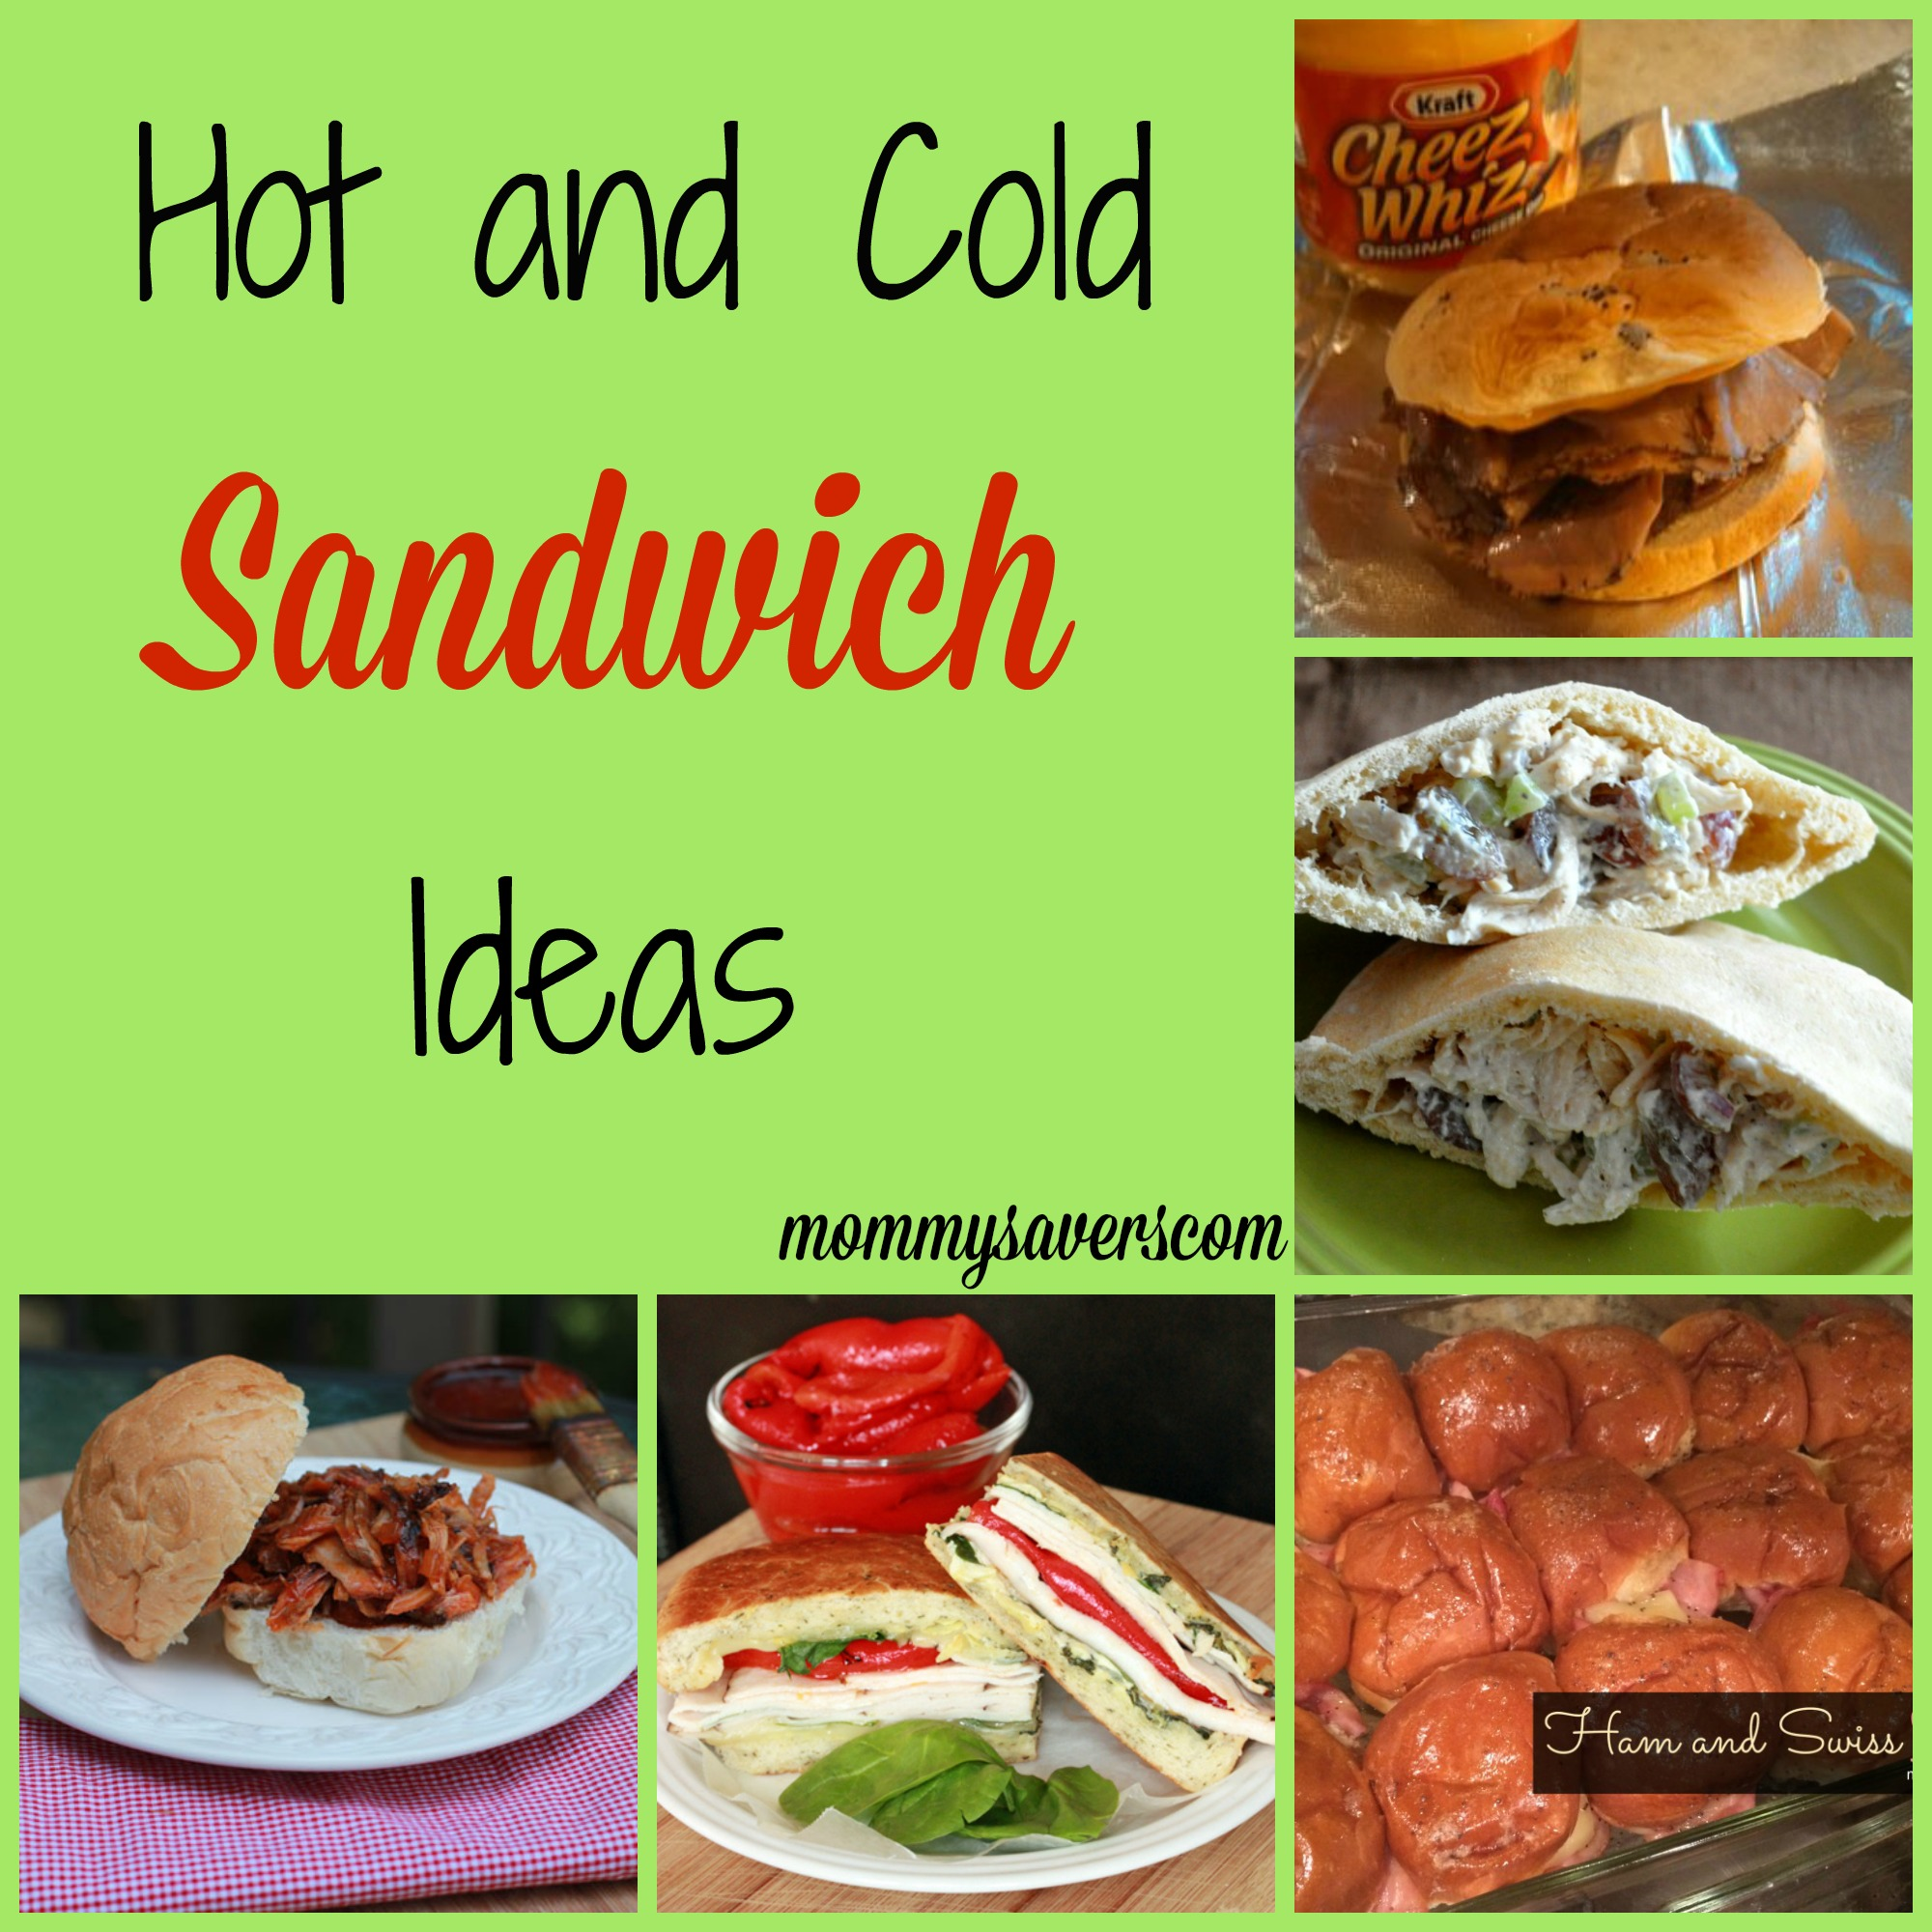 Hot And Cold Sandwich Ideas - Mommysavers-6081